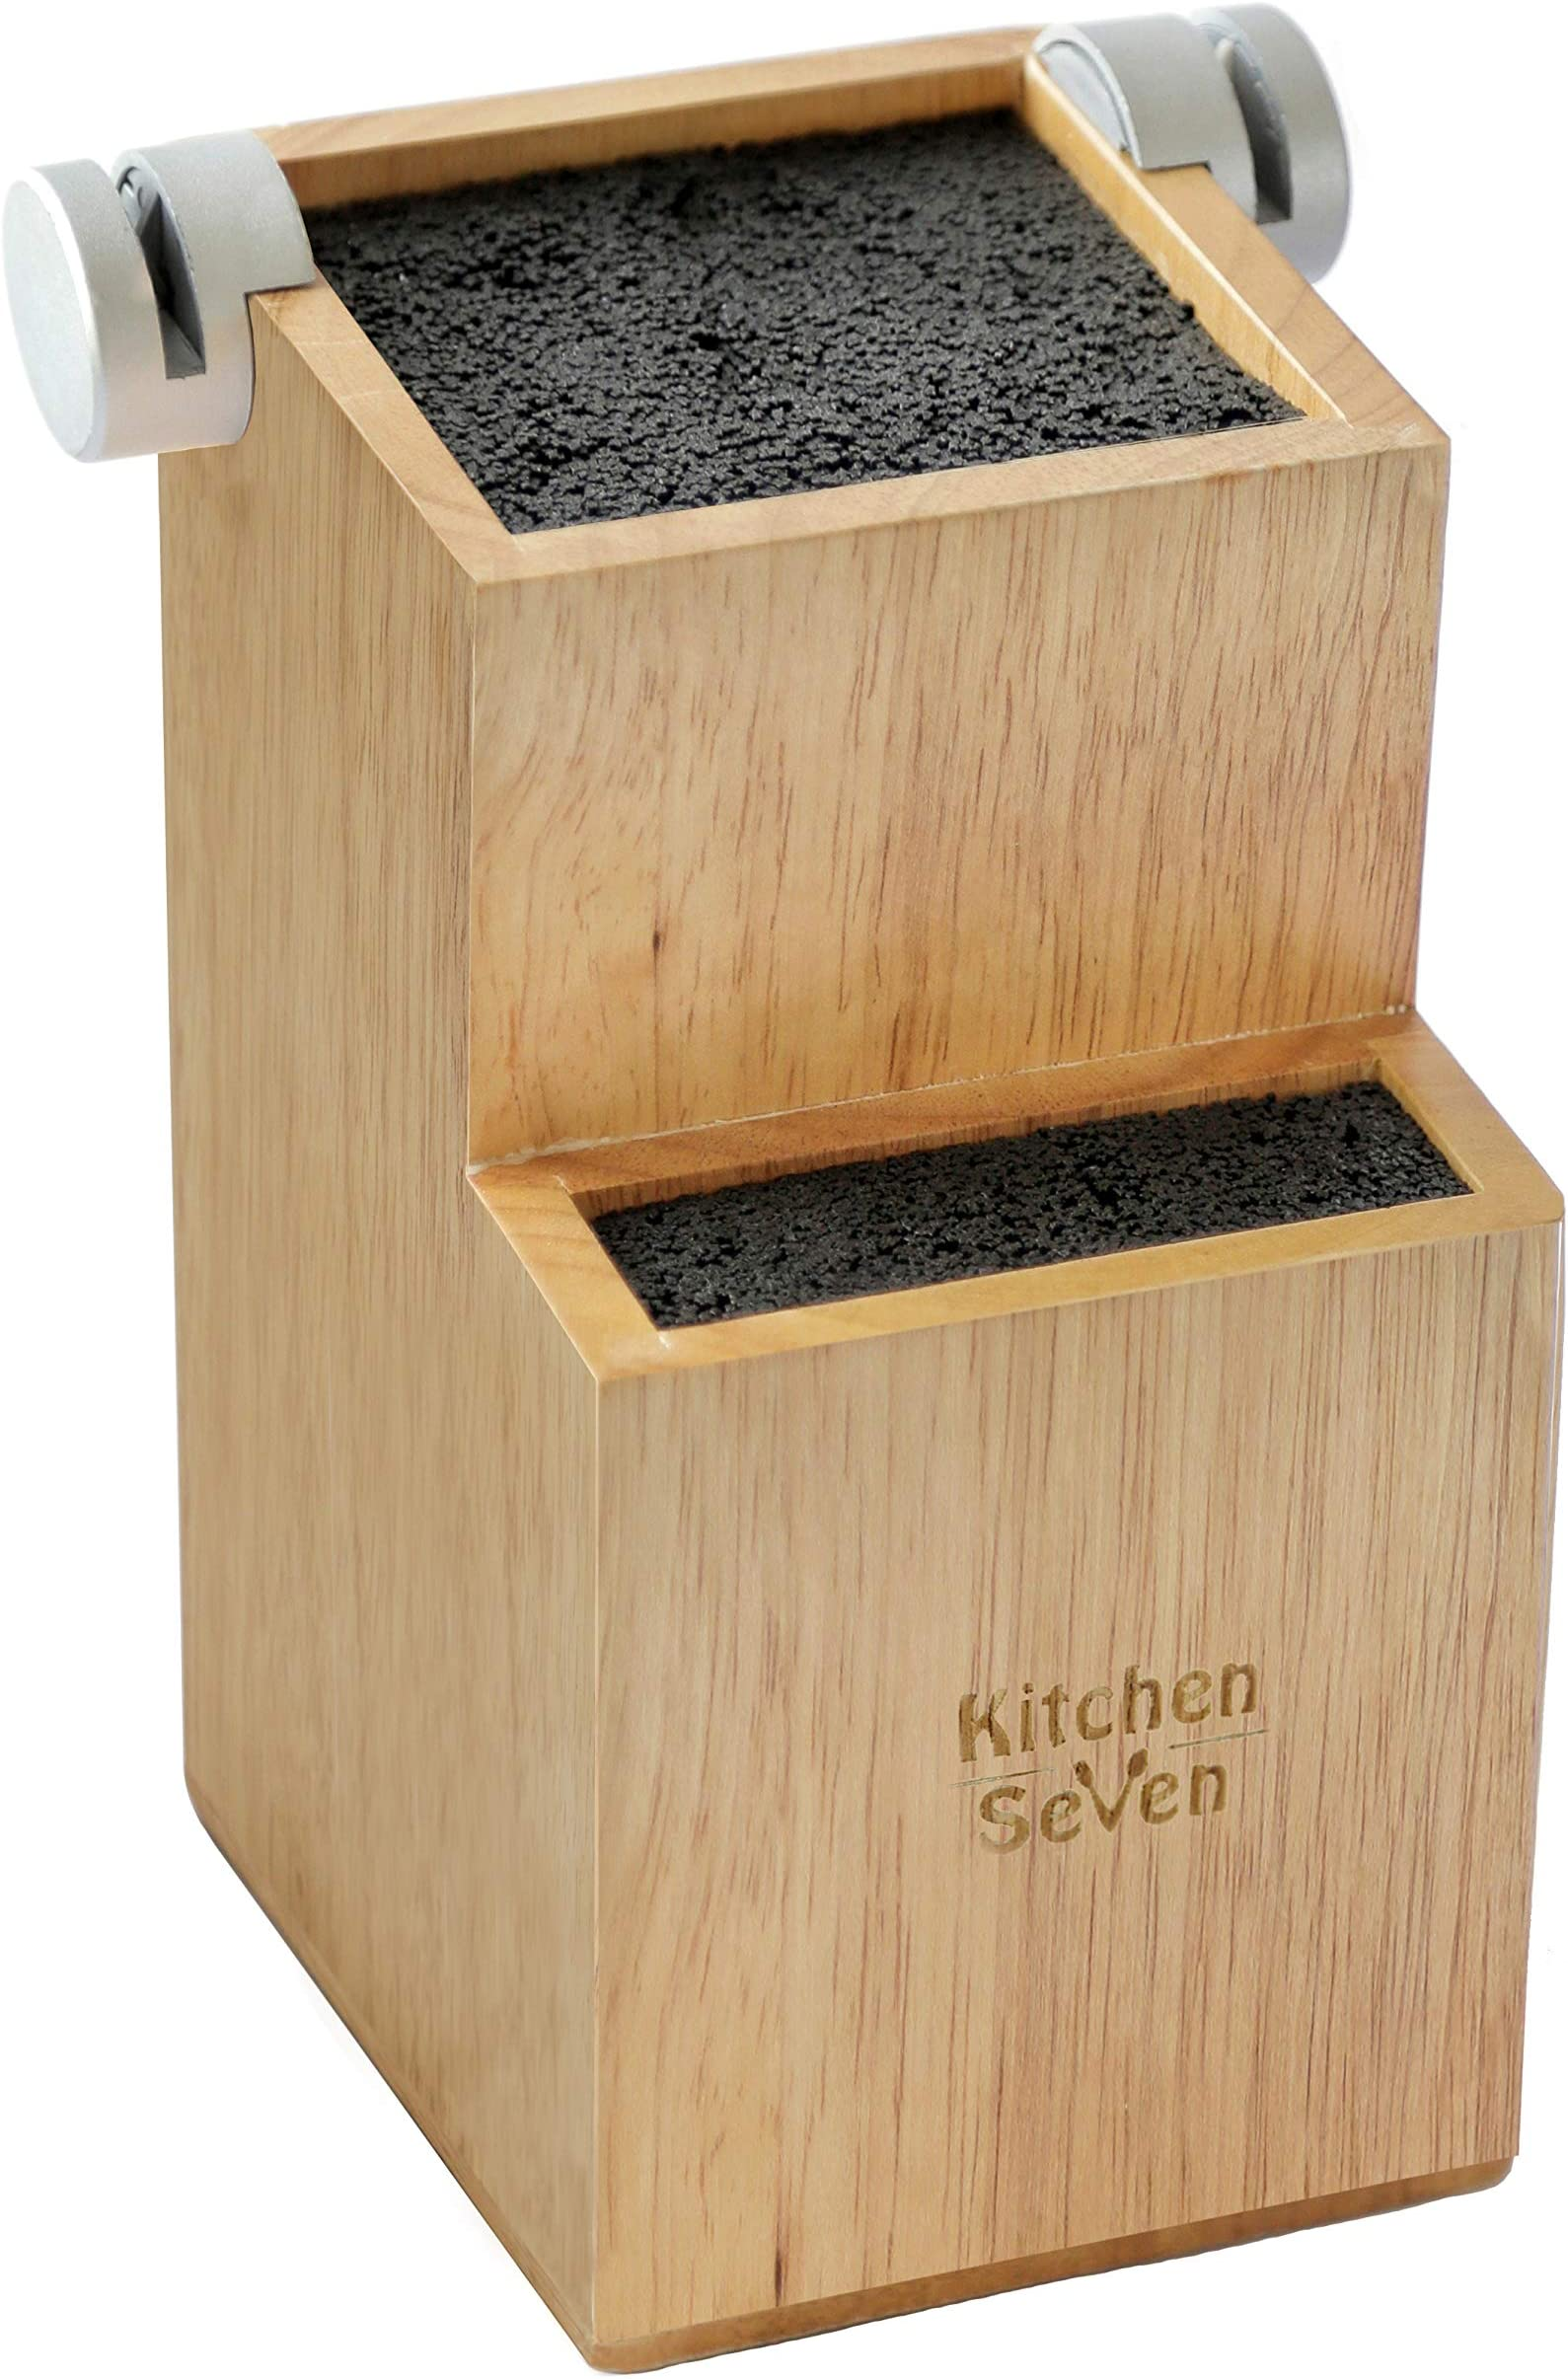 Bamboo Universal Knife Block - Knife Holder with 2 Built-In Knife Sharpeners - 2-Tiered Modern Knife Storage Up to 16 Large and Small Knives Easy Clean Wooden Knife Organizer by Kitchen Seven